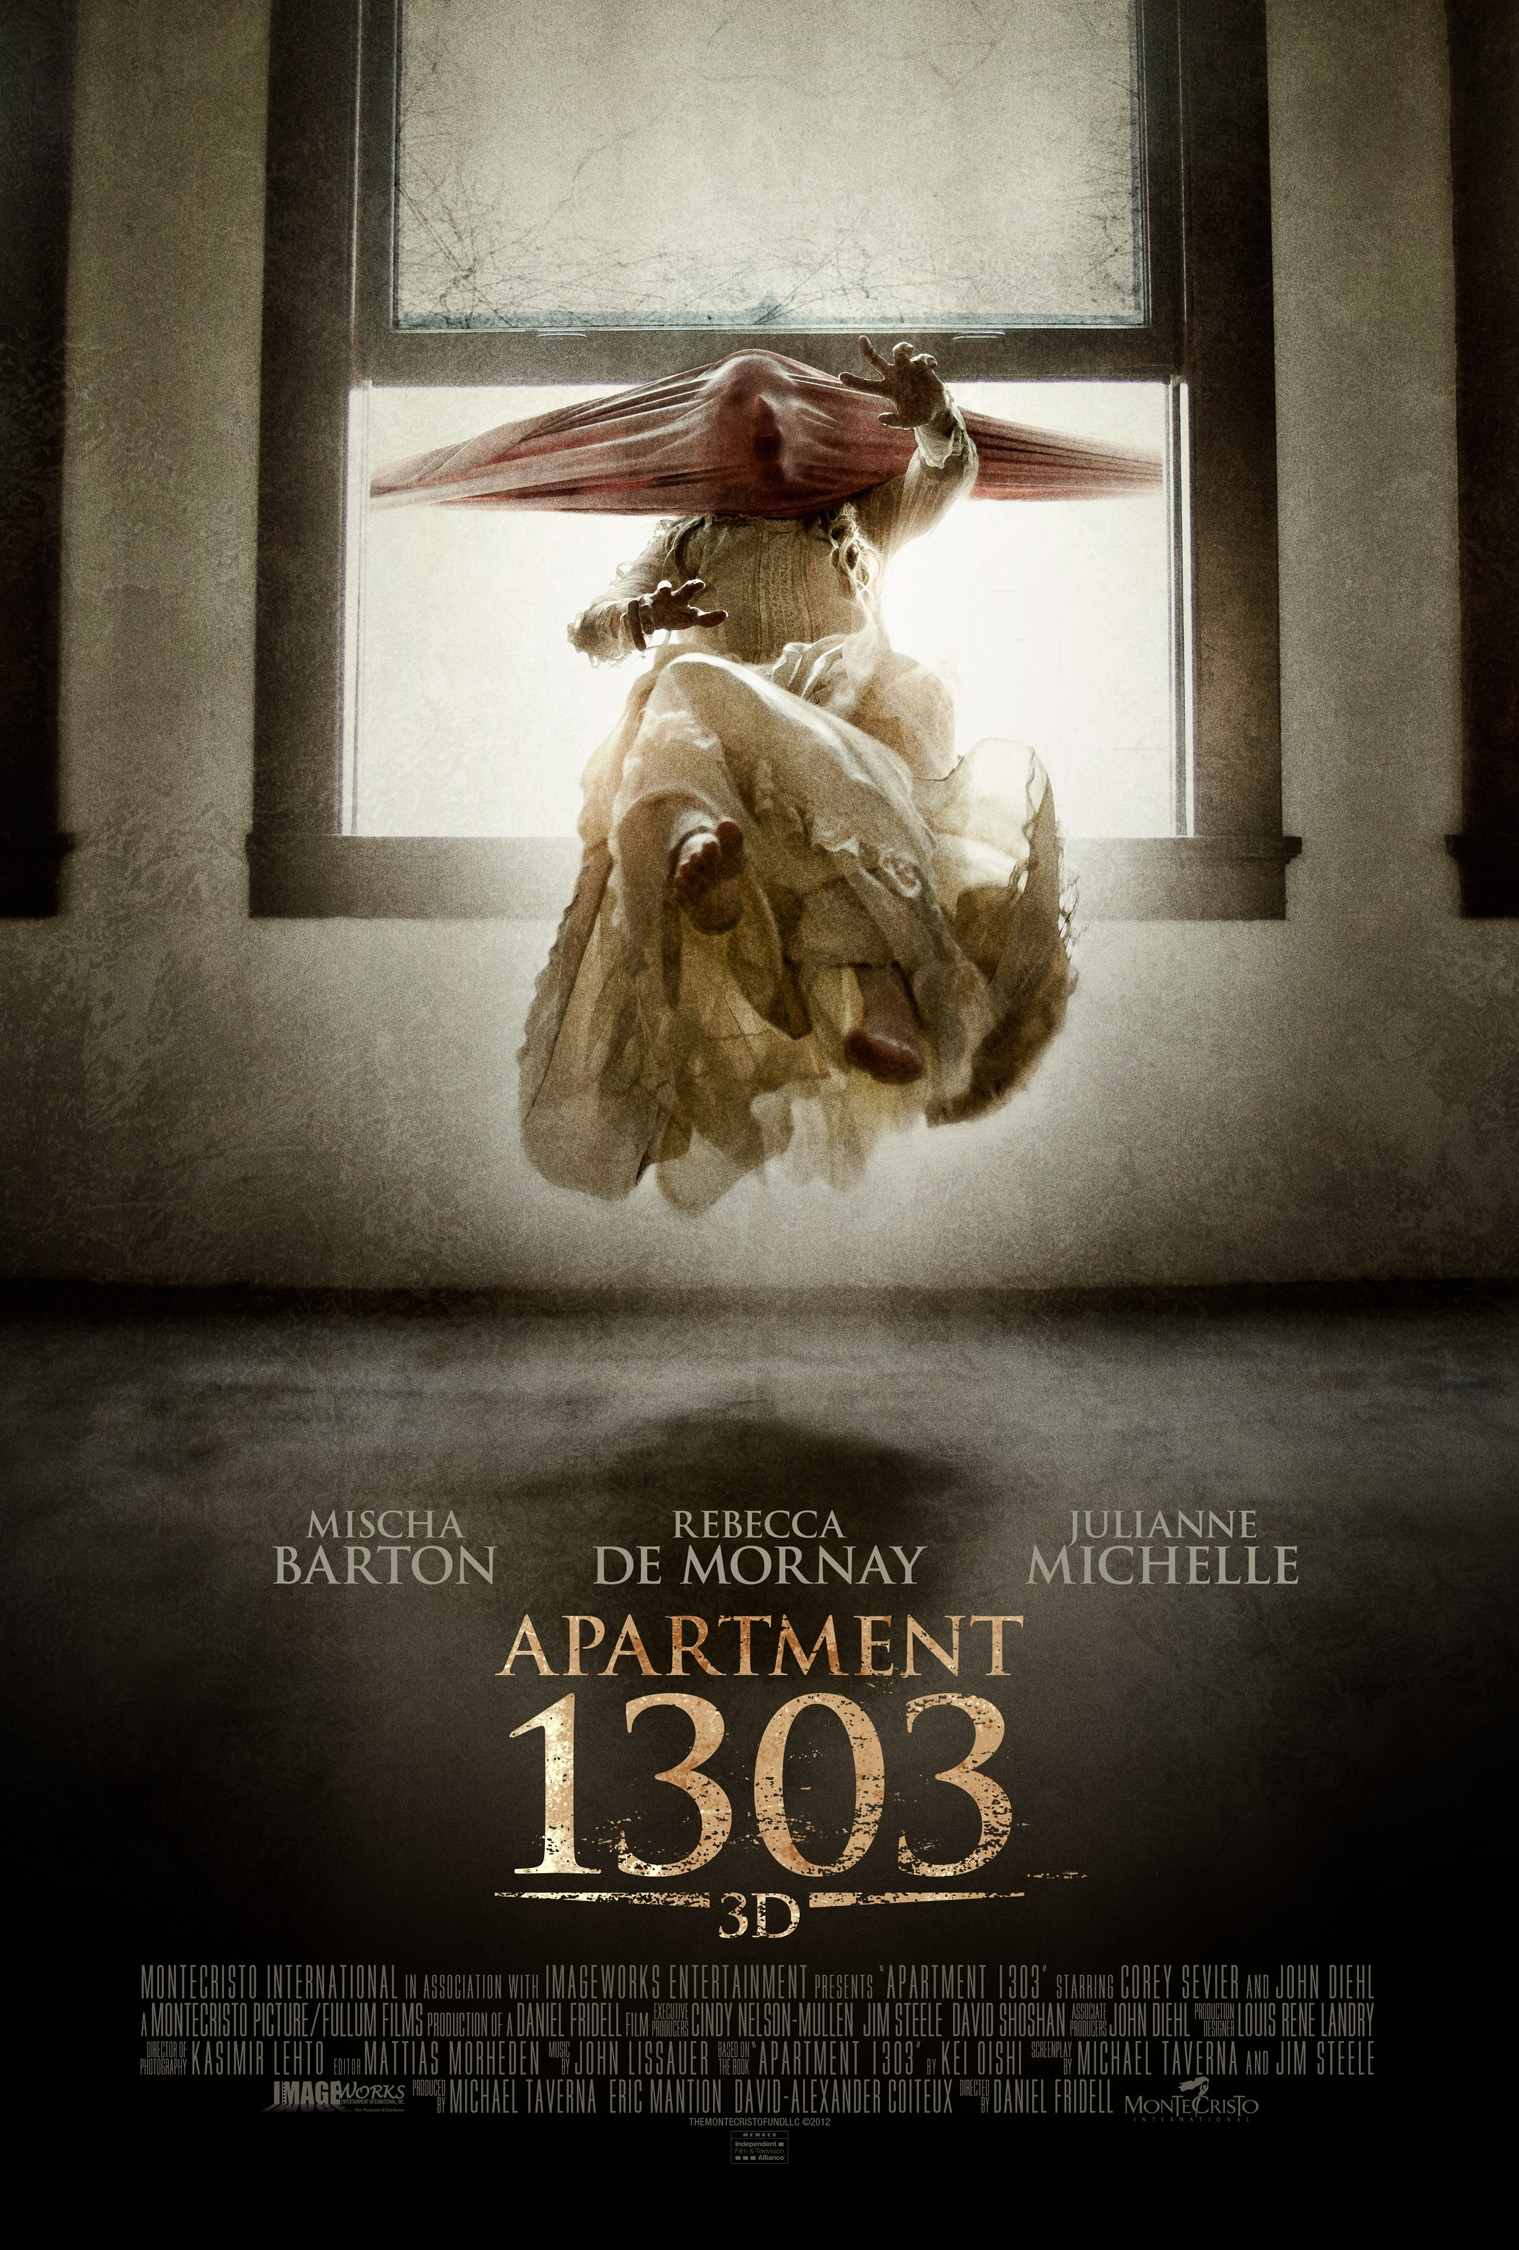 New Poster For Apartment 1303 3D